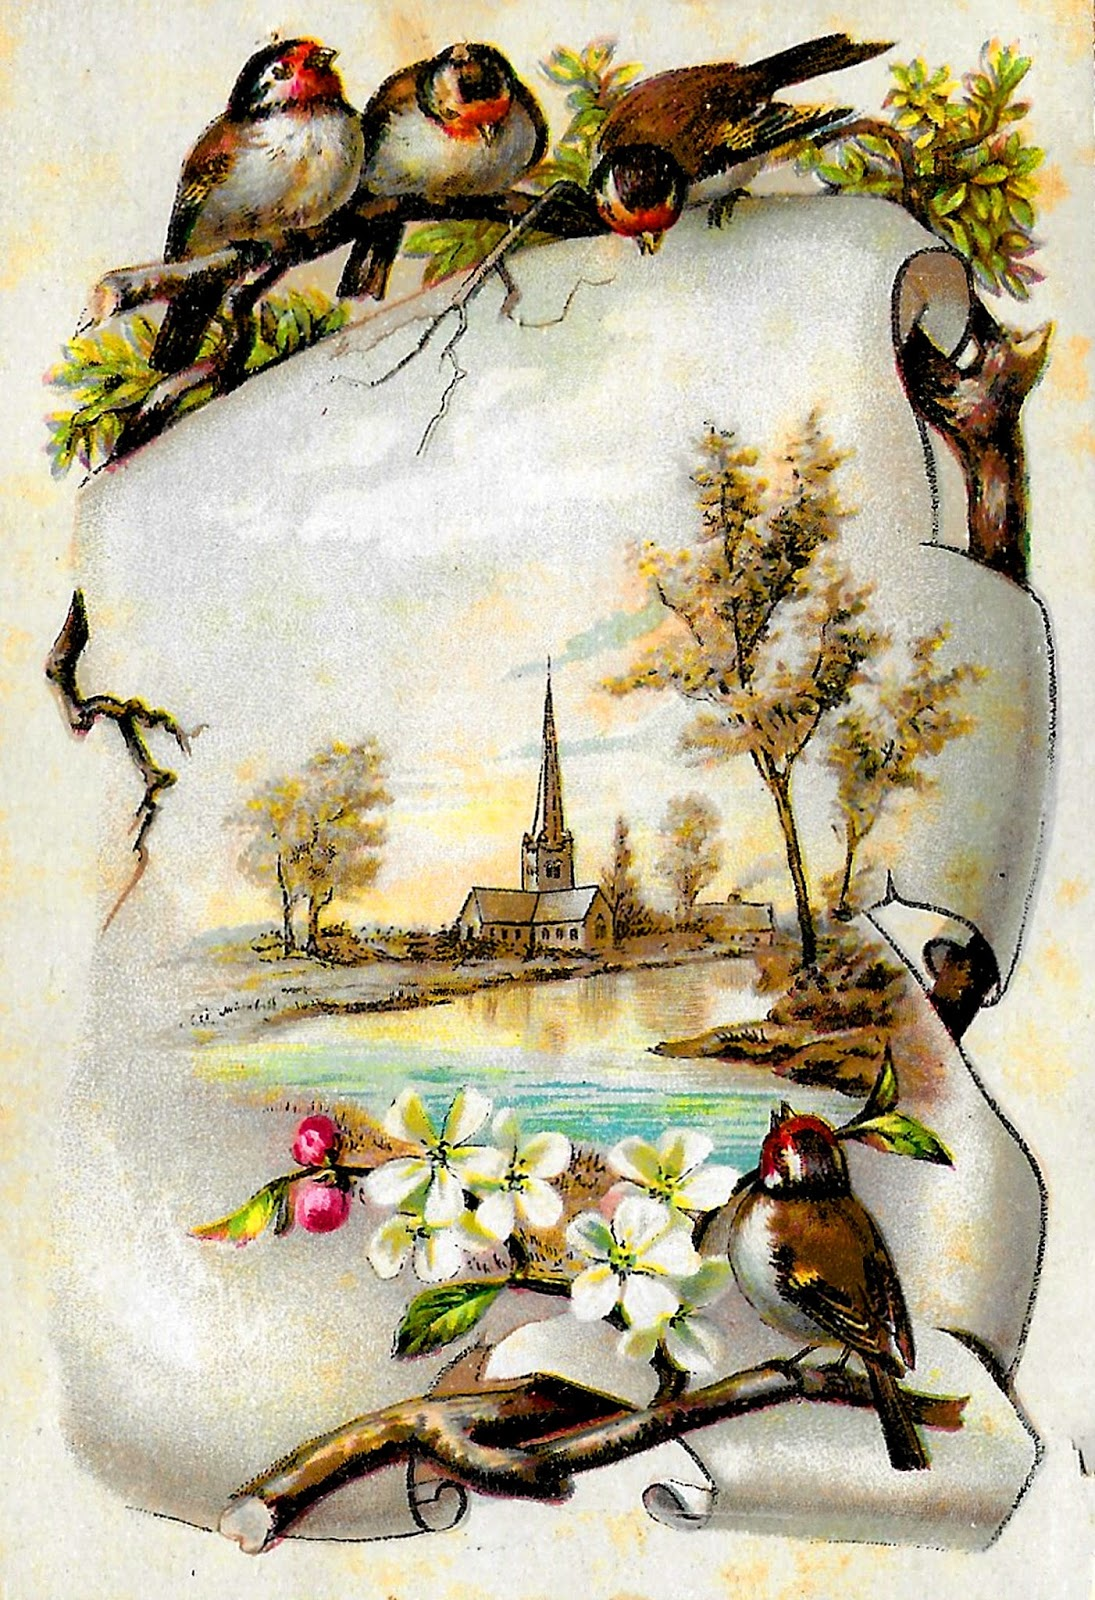 Antique Images Royalty Free Bird Flower Rose Cherry Blossom